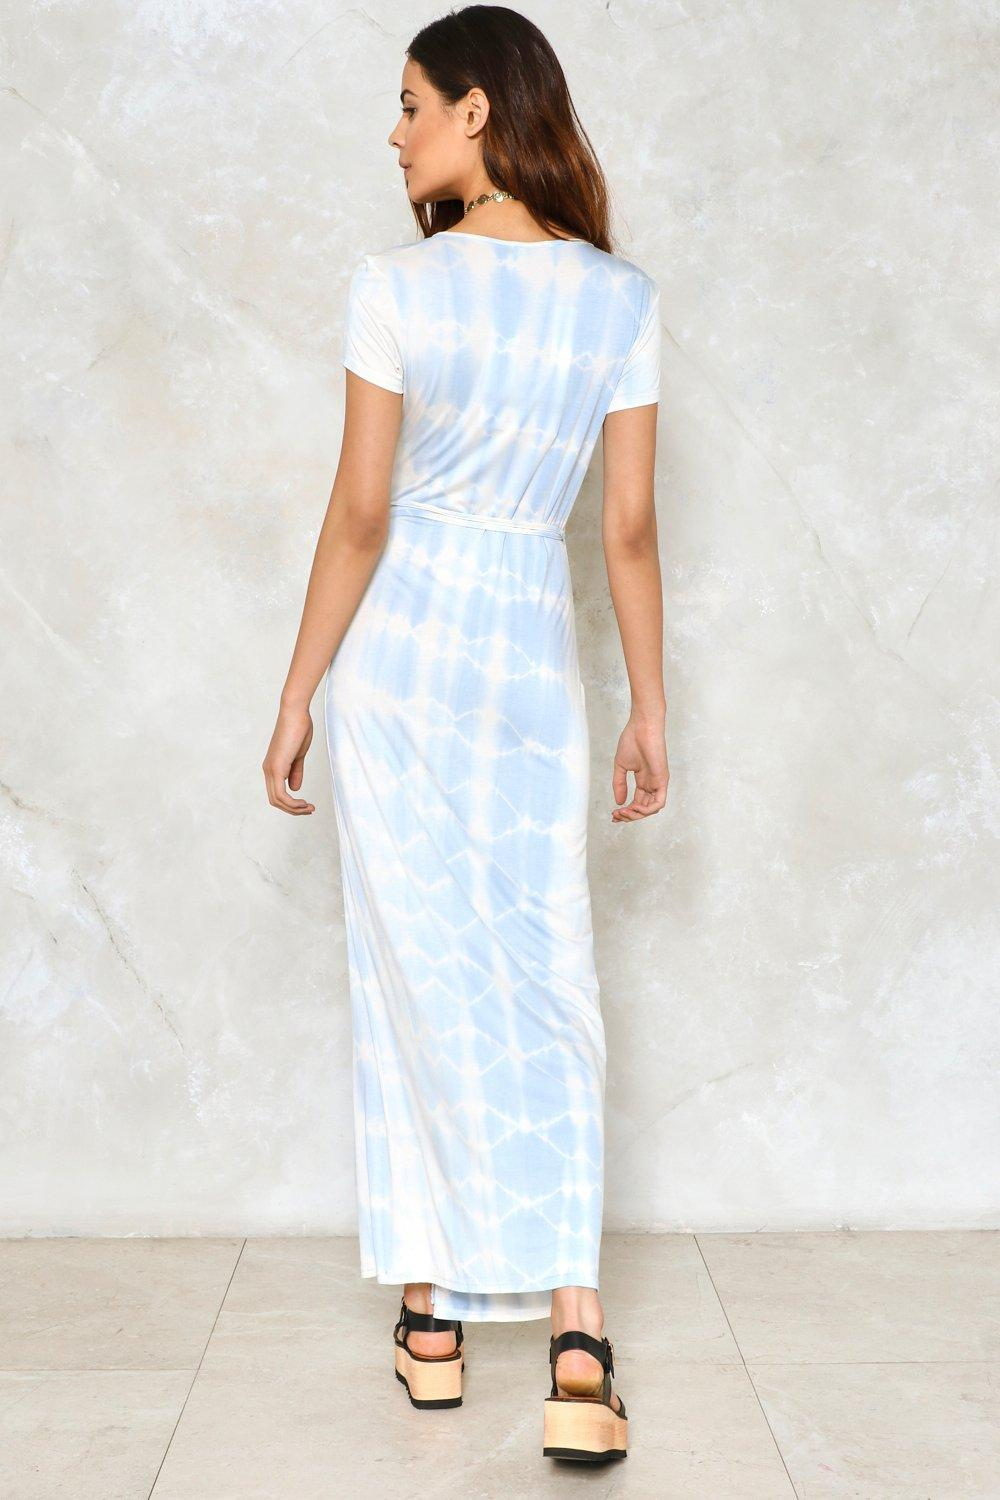 f3755a1df4 Womens Sky Tie-Dye For Maxi Dress.